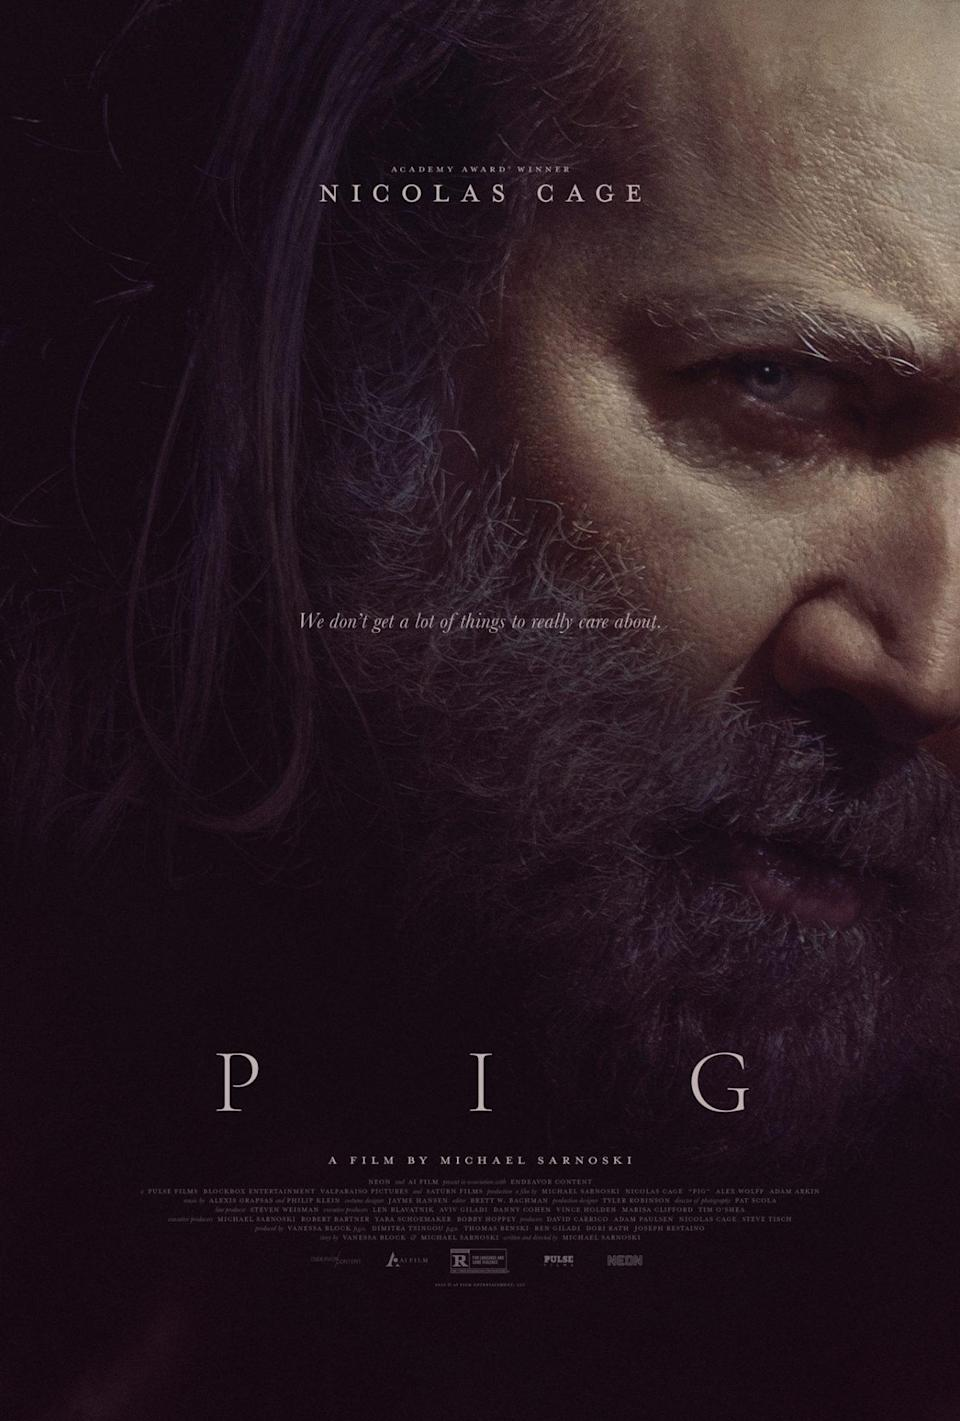 Nicolas Cage's face on the dark, shadowy poster for the movie Pig.